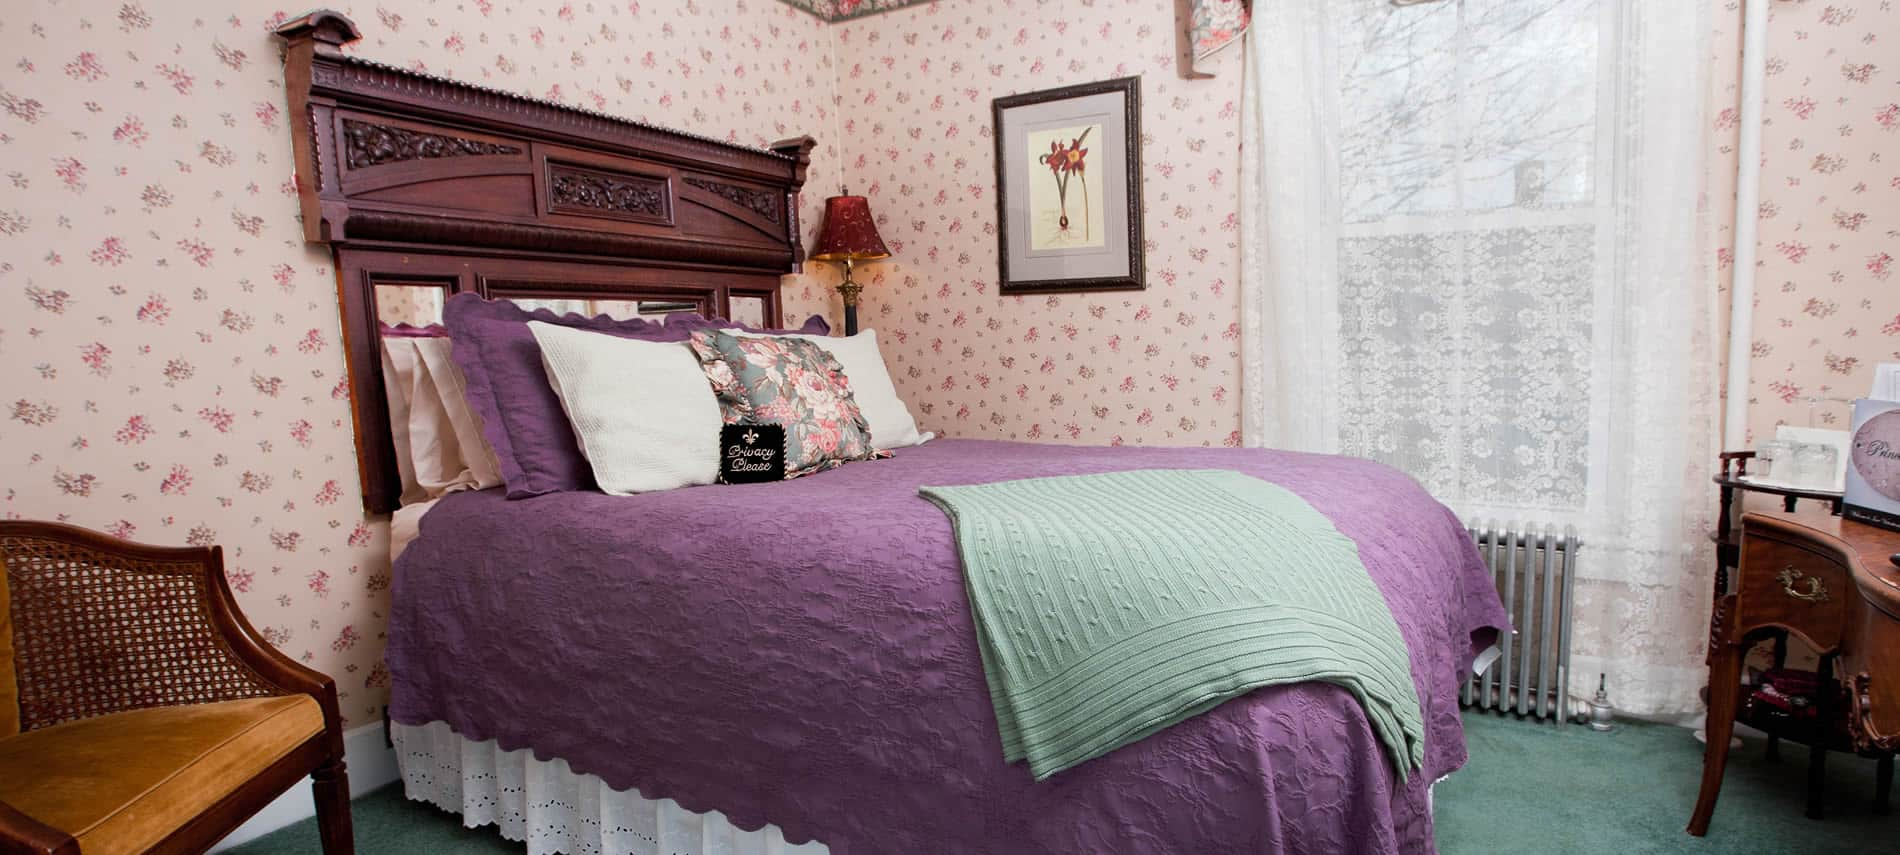 Princess Louise guest room, tiny floral papered walls, carved headboard, and purple bedding